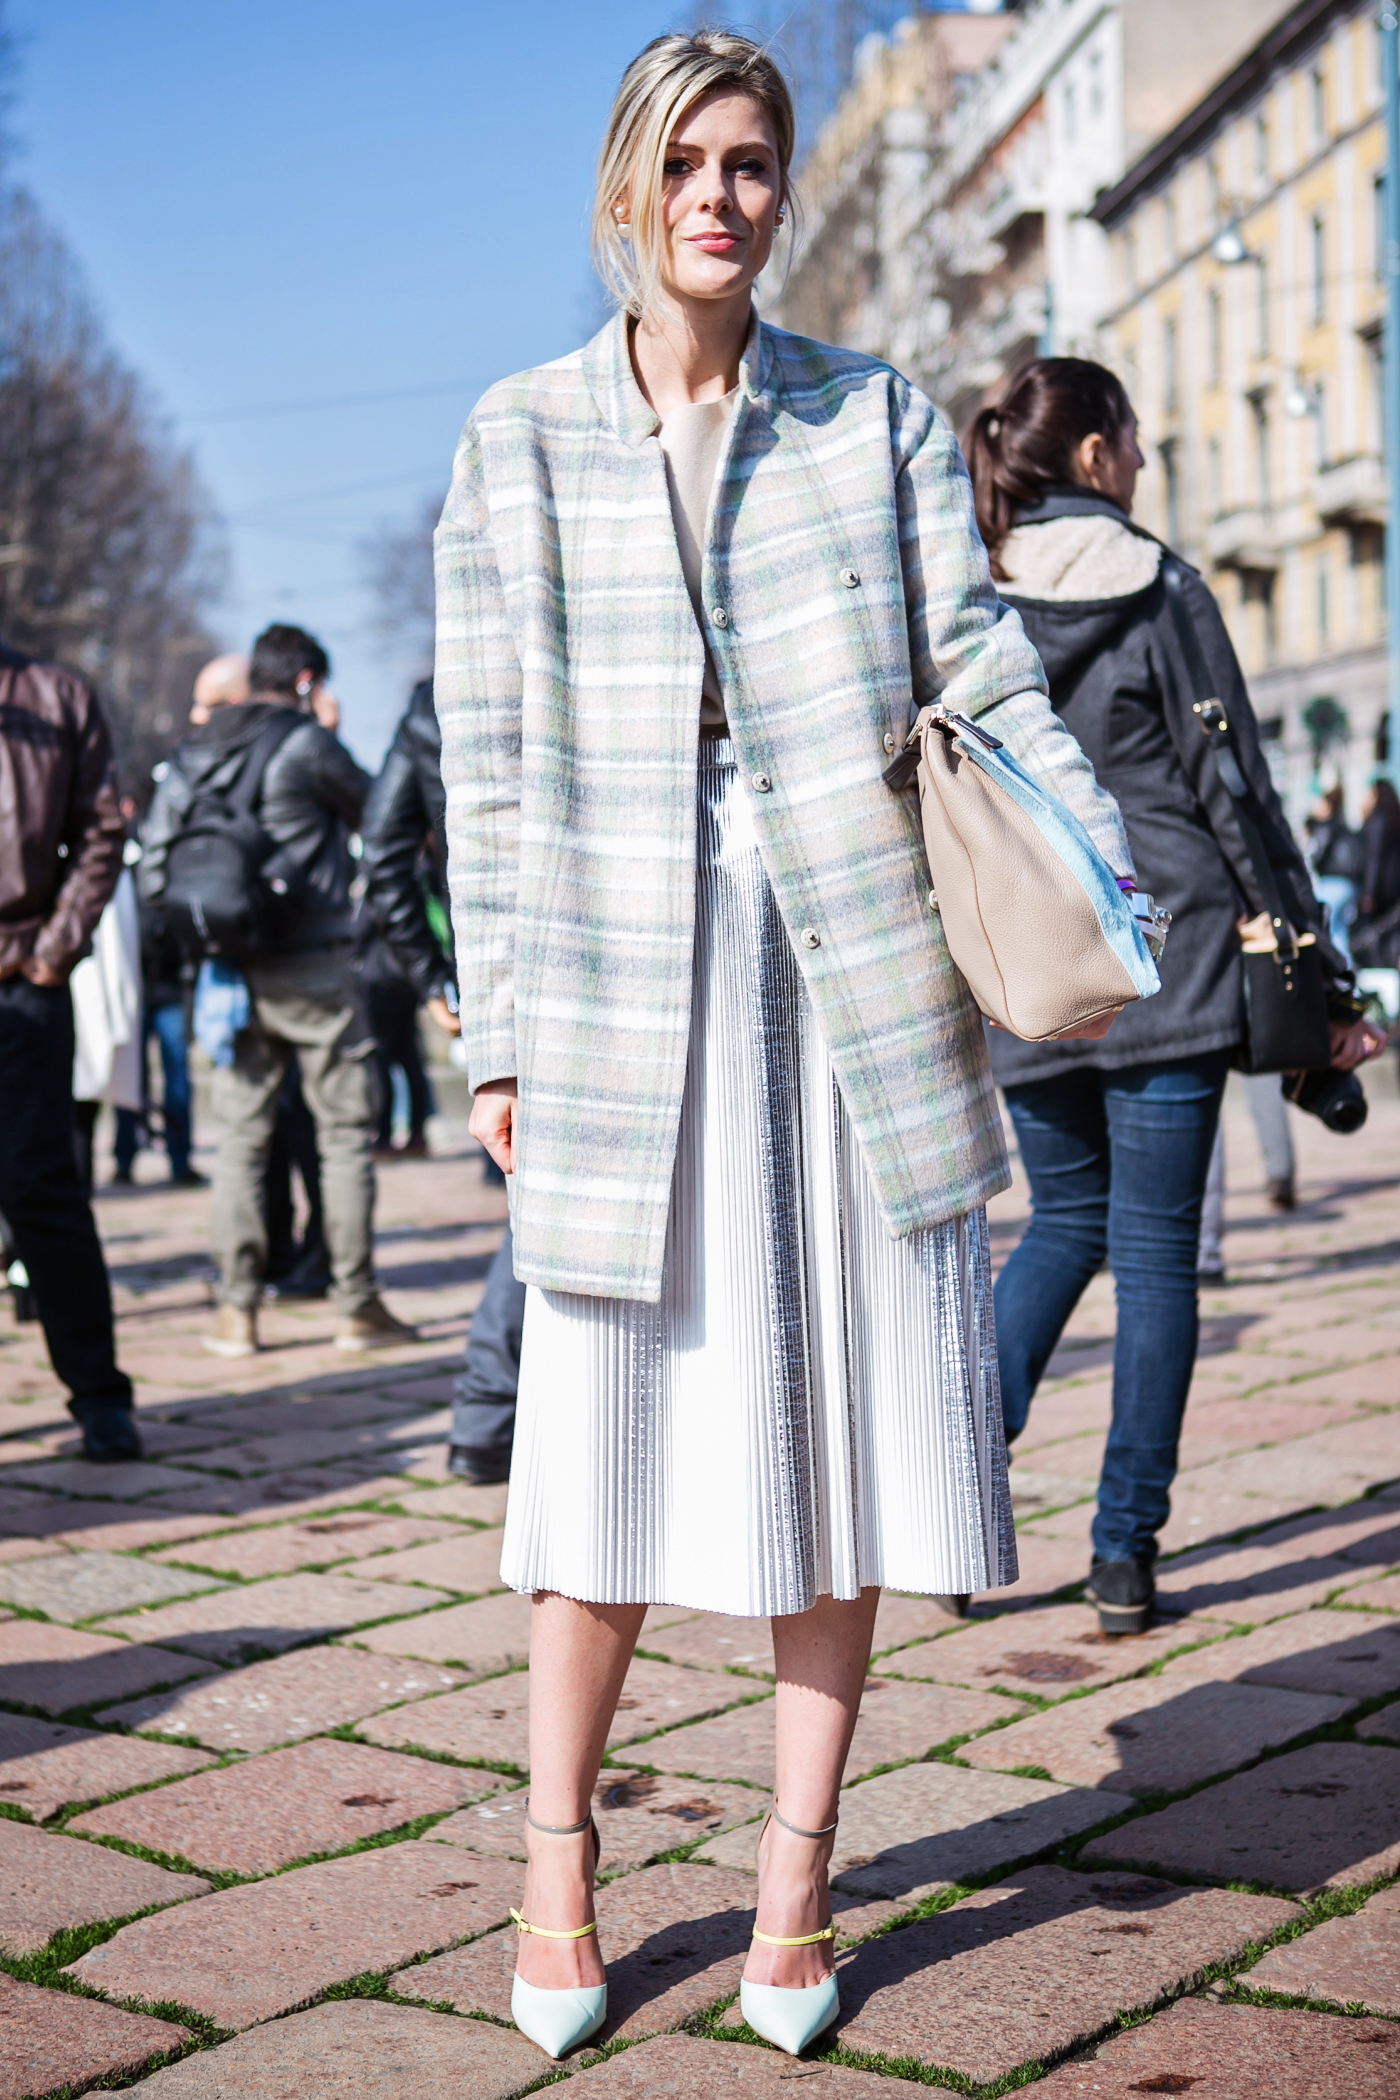 thecablook darya kamalova russian italian fashion blogger blonde short hair pixie cut street style whats inside you by eleonora carisi outfit asos long red coat steven heels shopbop milan fashion week aw14 15 arco della pace just cavalli-11 copy